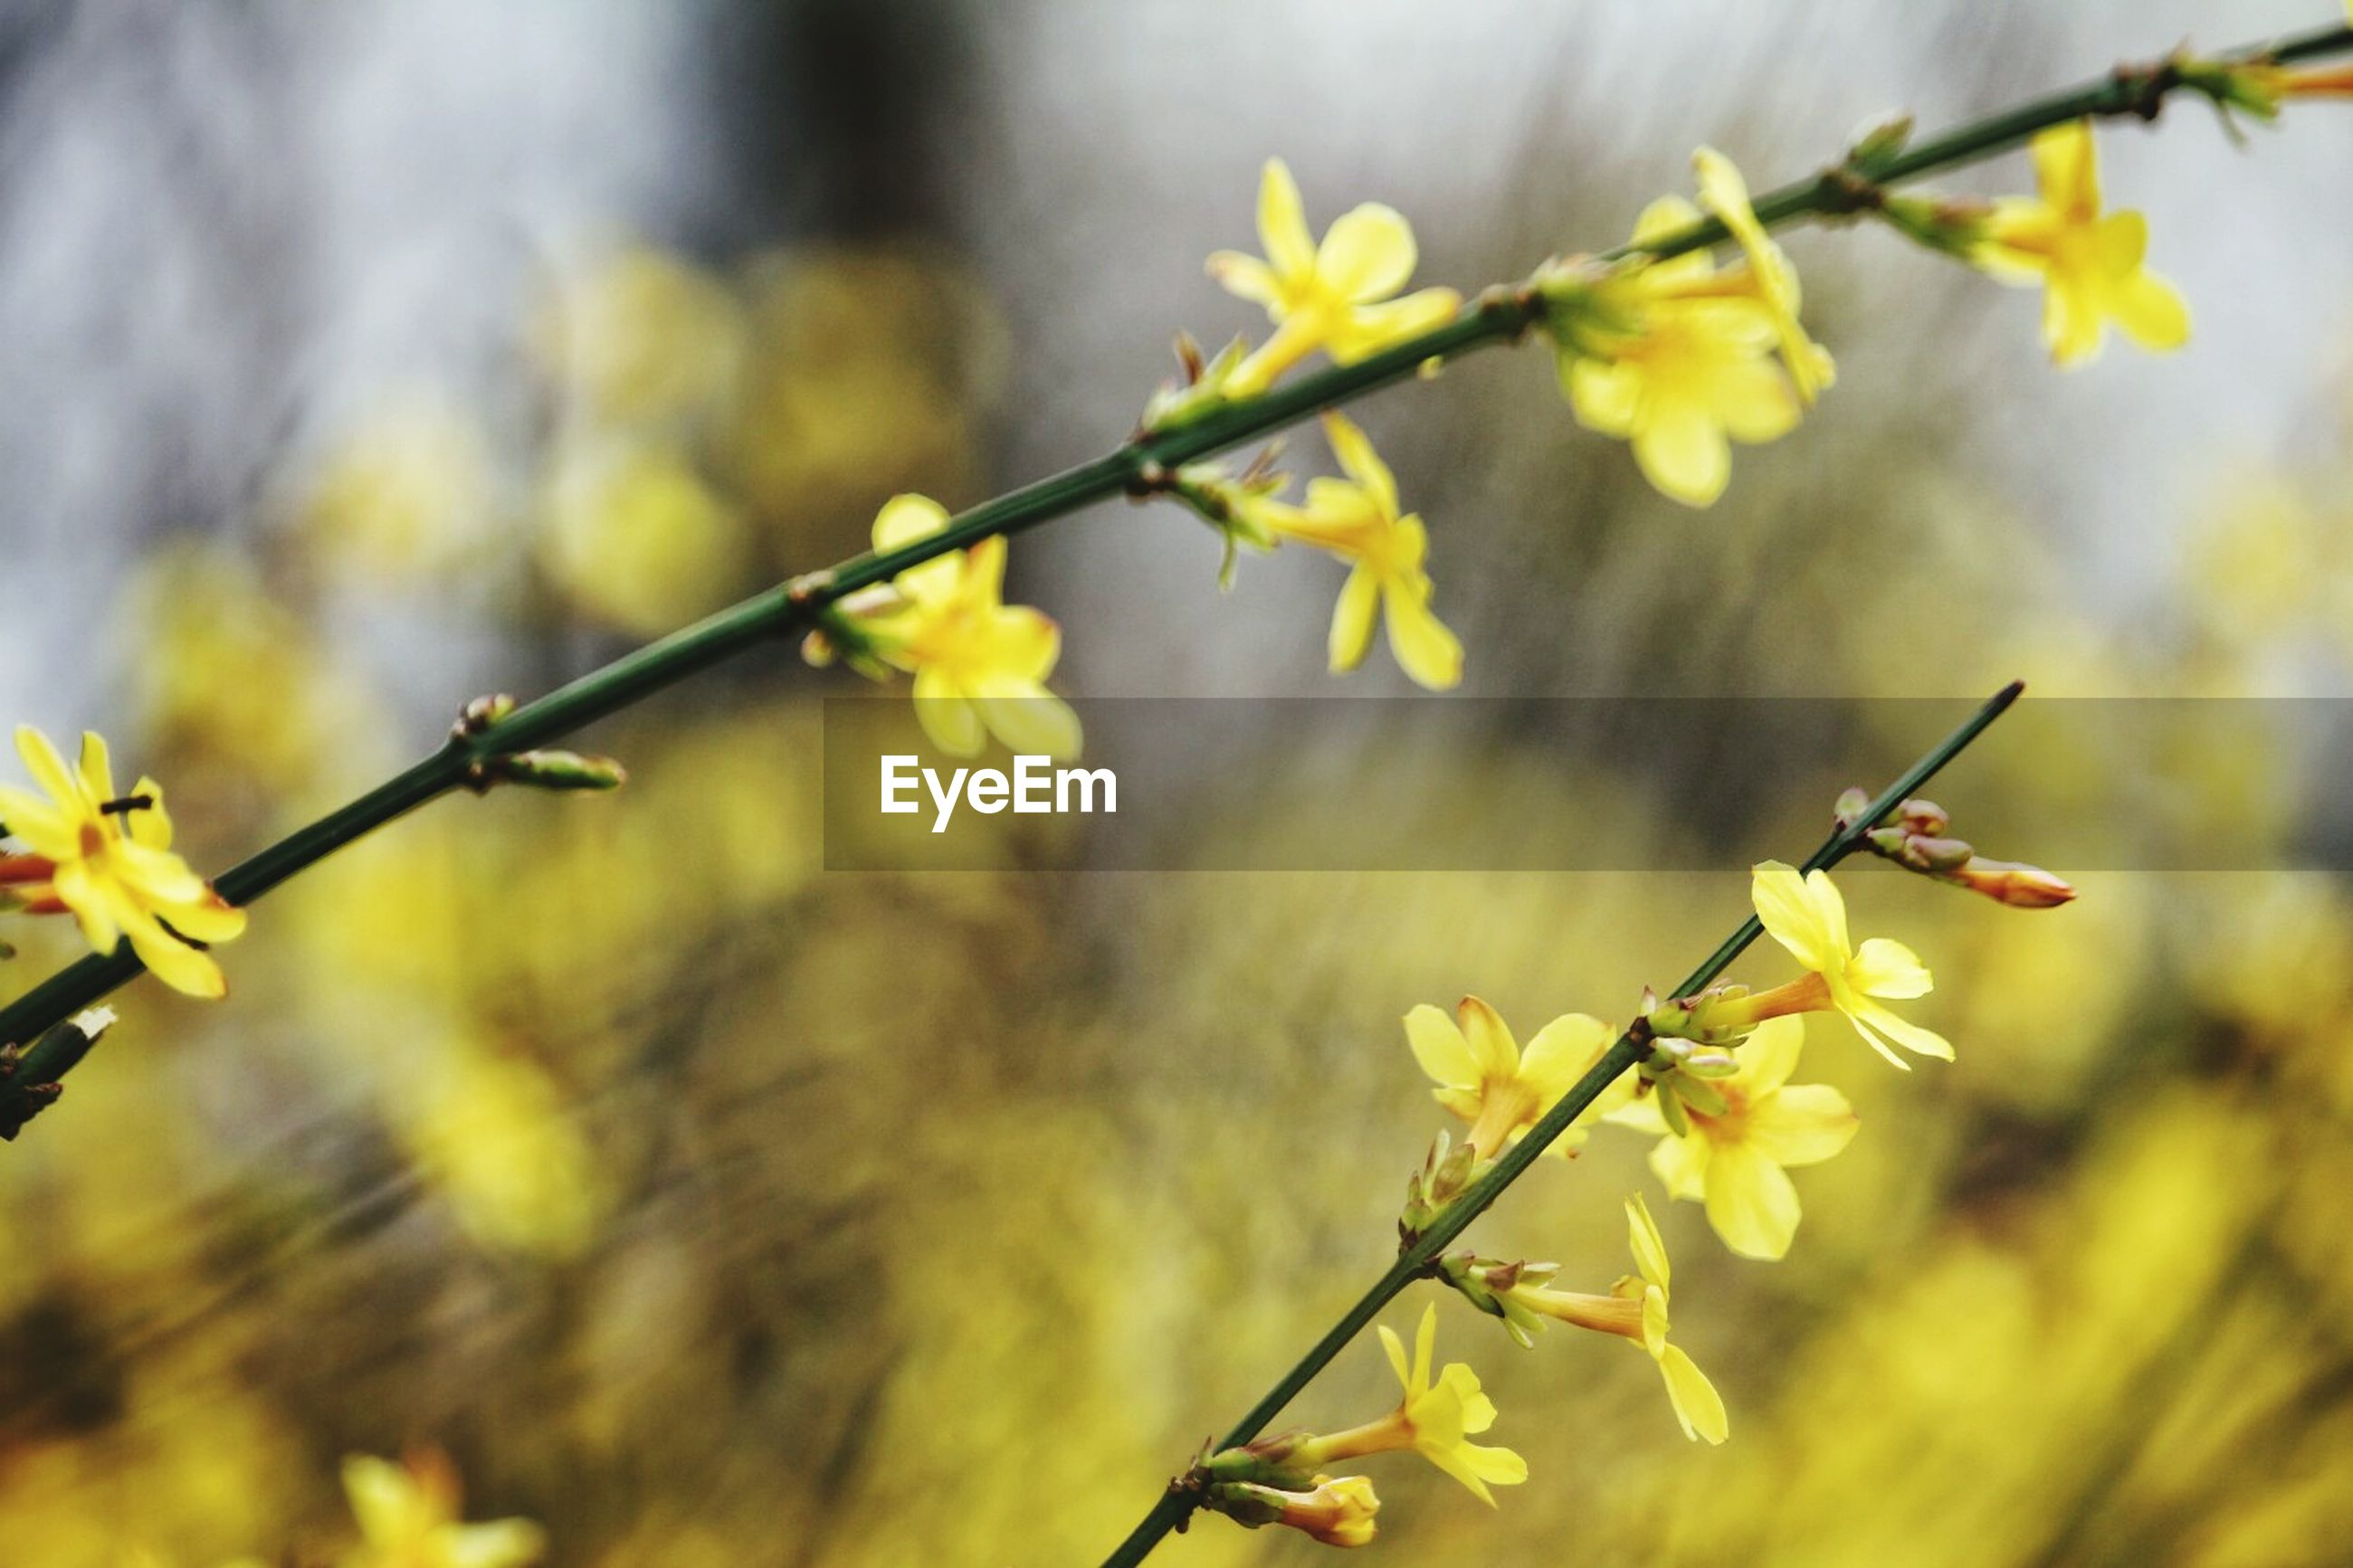 growth, nature, flower, beauty in nature, plant, fragility, day, outdoors, no people, twig, freshness, focus on foreground, close-up, branch, tree, animal themes, flower head, sky